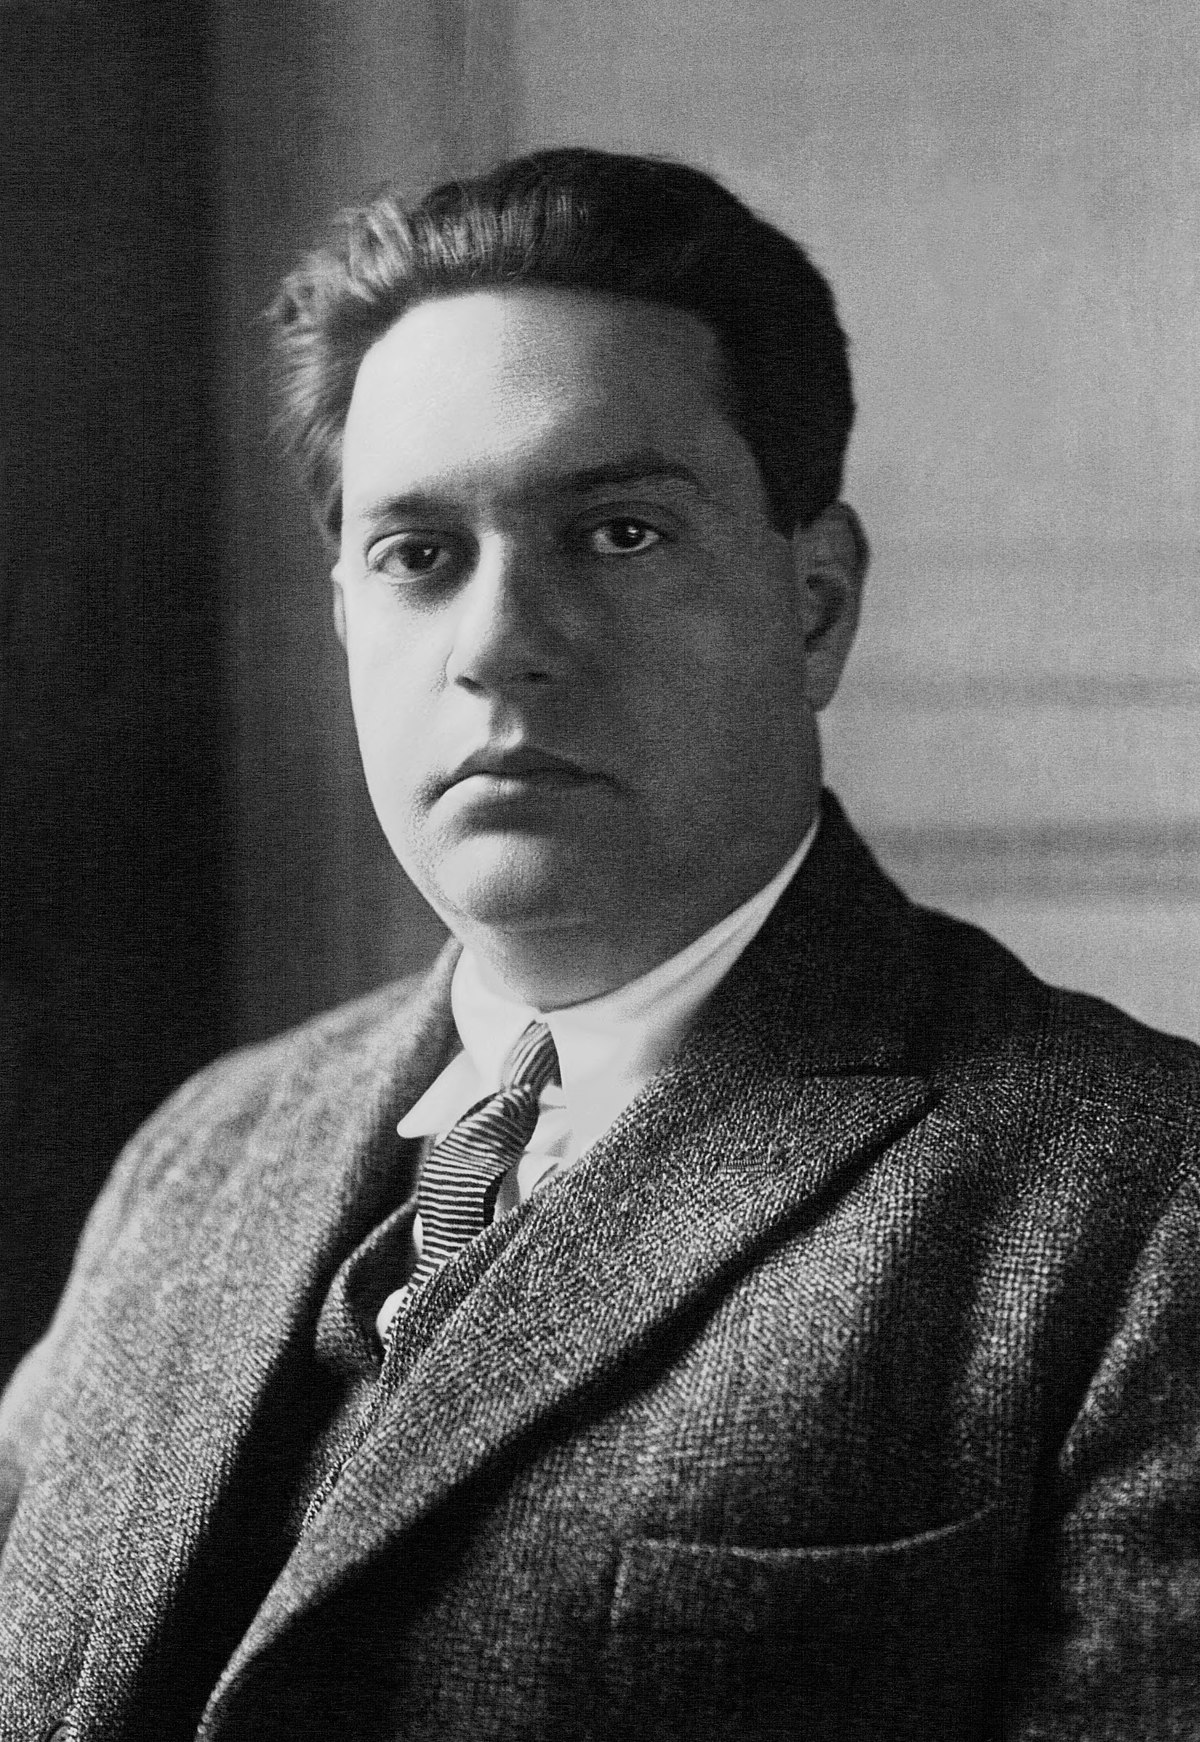 List of compositions by Darius Milhaud - Wikipedia